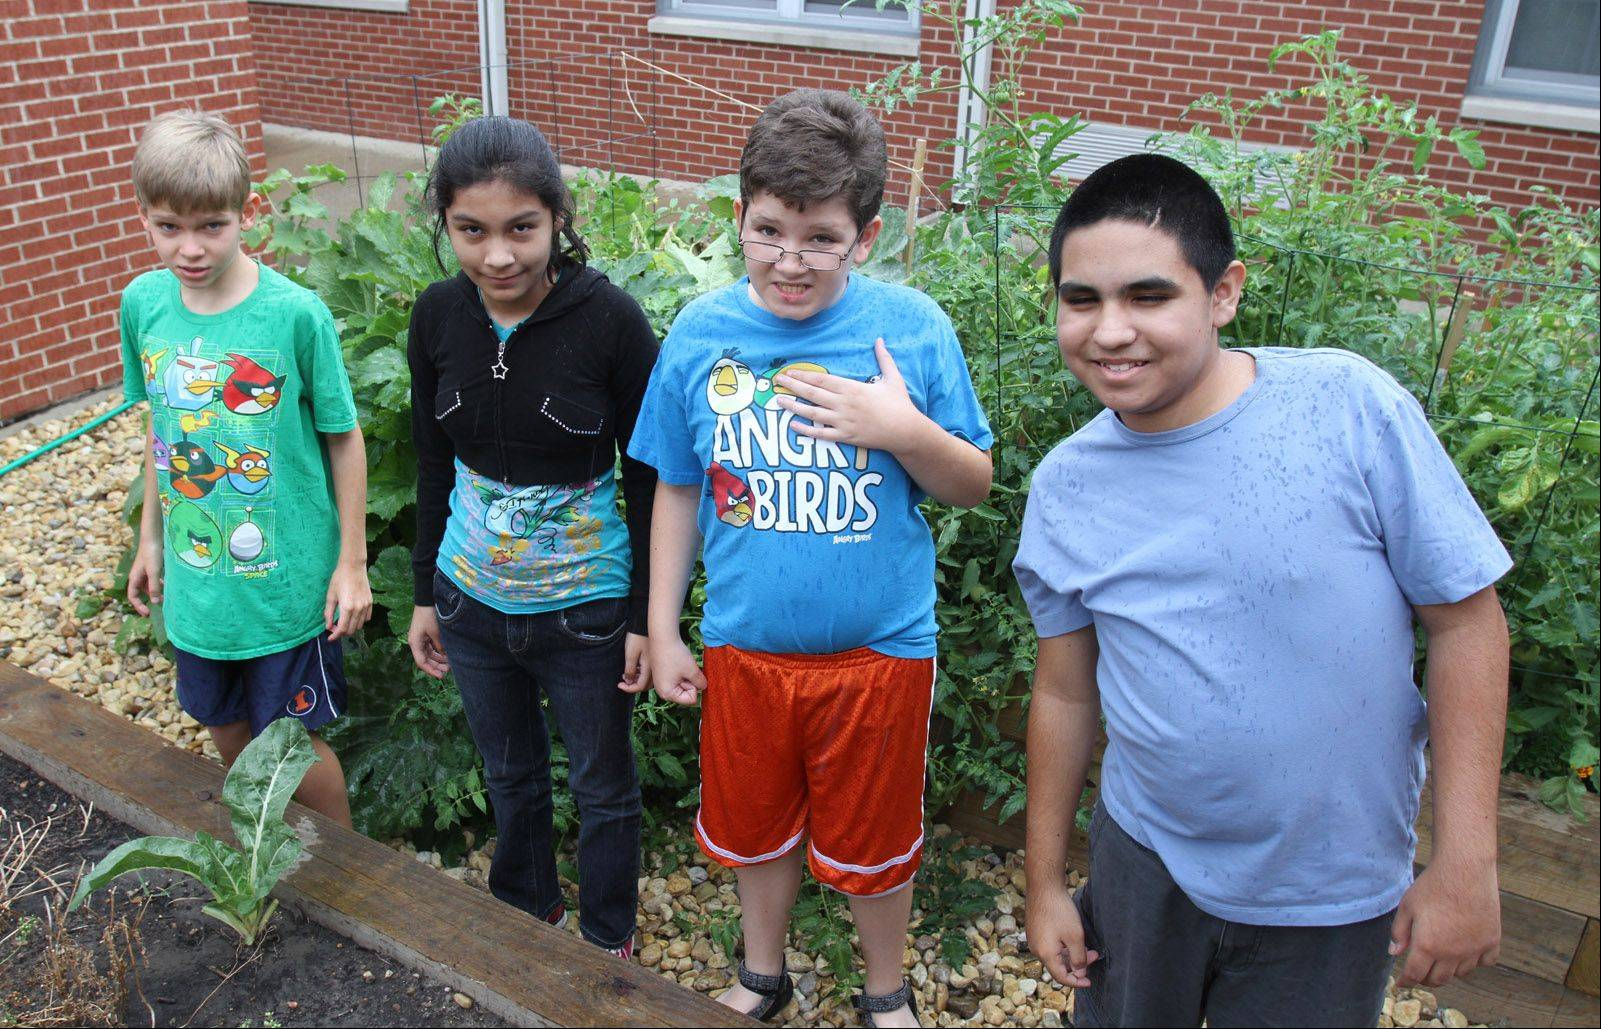 Summer school students Jack Ausnehmer, left to right, Alondra Ramos, Michael Ausnehmer and Luis Rodriguez help harvest vegetables at London Middle School's garden in Wheeling. The school's garden benefits the food pantries through the Giving Garden program.